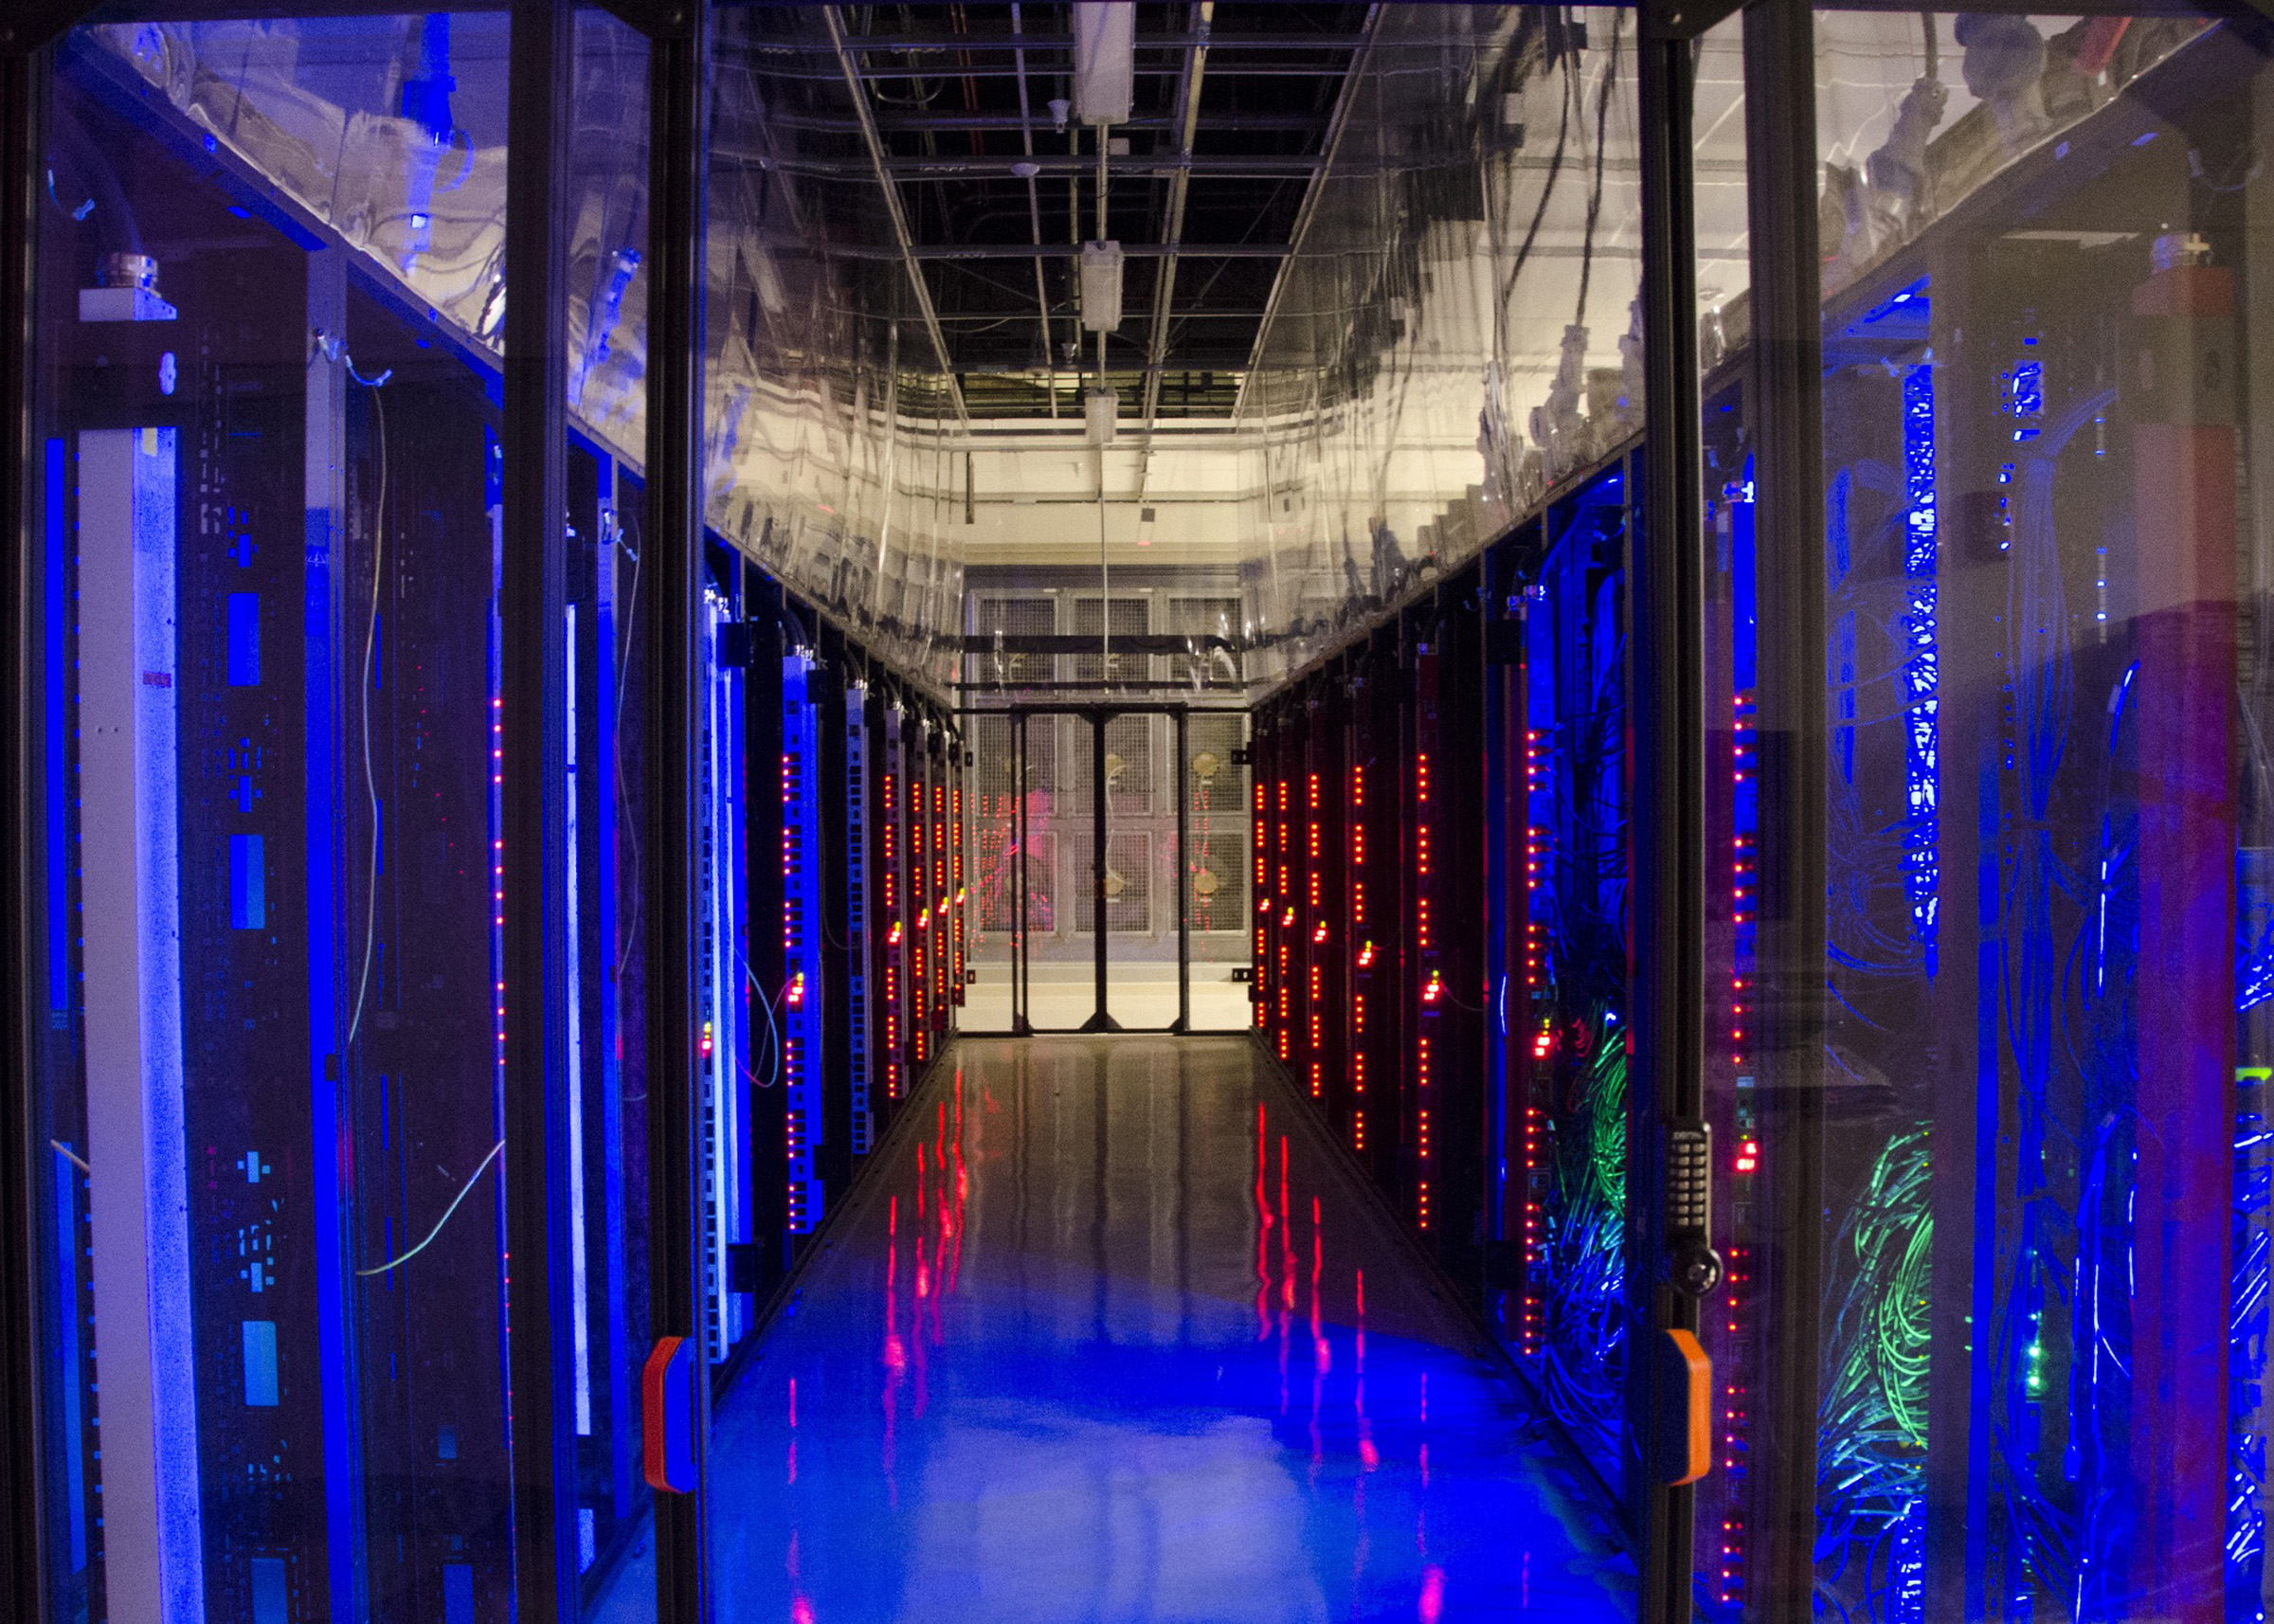 """Power lights on computer networks glow in this photo taken inside the University of Utah's data center in downtown Salt Lake City. With a $10 million grant from the National Science Foundation, the data center will host a new computing facility that will be used to develop """"clouds"""" for real-time disaster response or the security of private data such as medical records. Clouds are computer networks used to run software applications and store large amounts of data online. The new facility will be called CloudLab."""